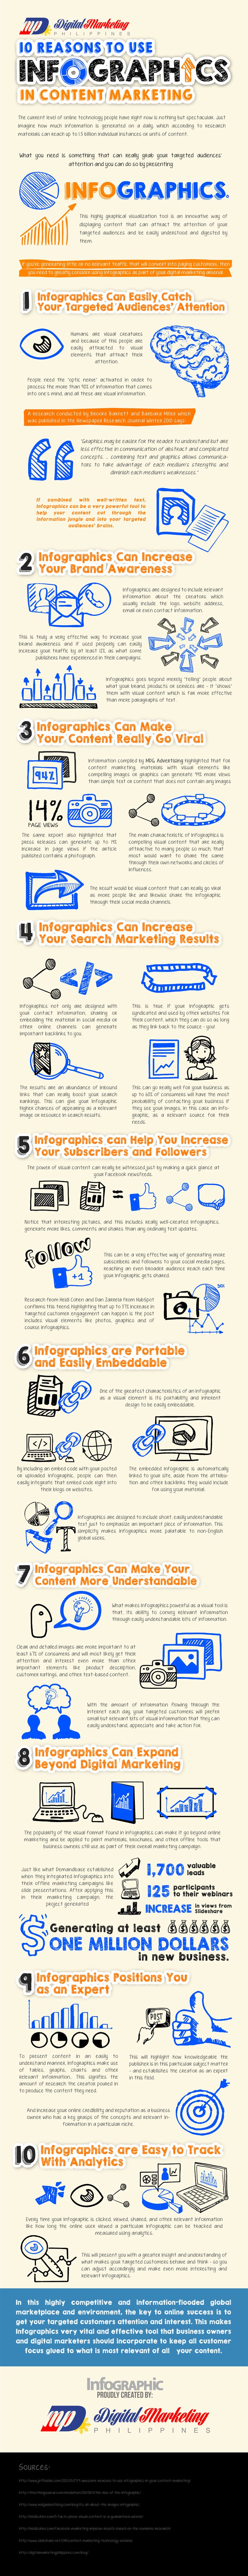 Infographics Improve Marketing Strategy